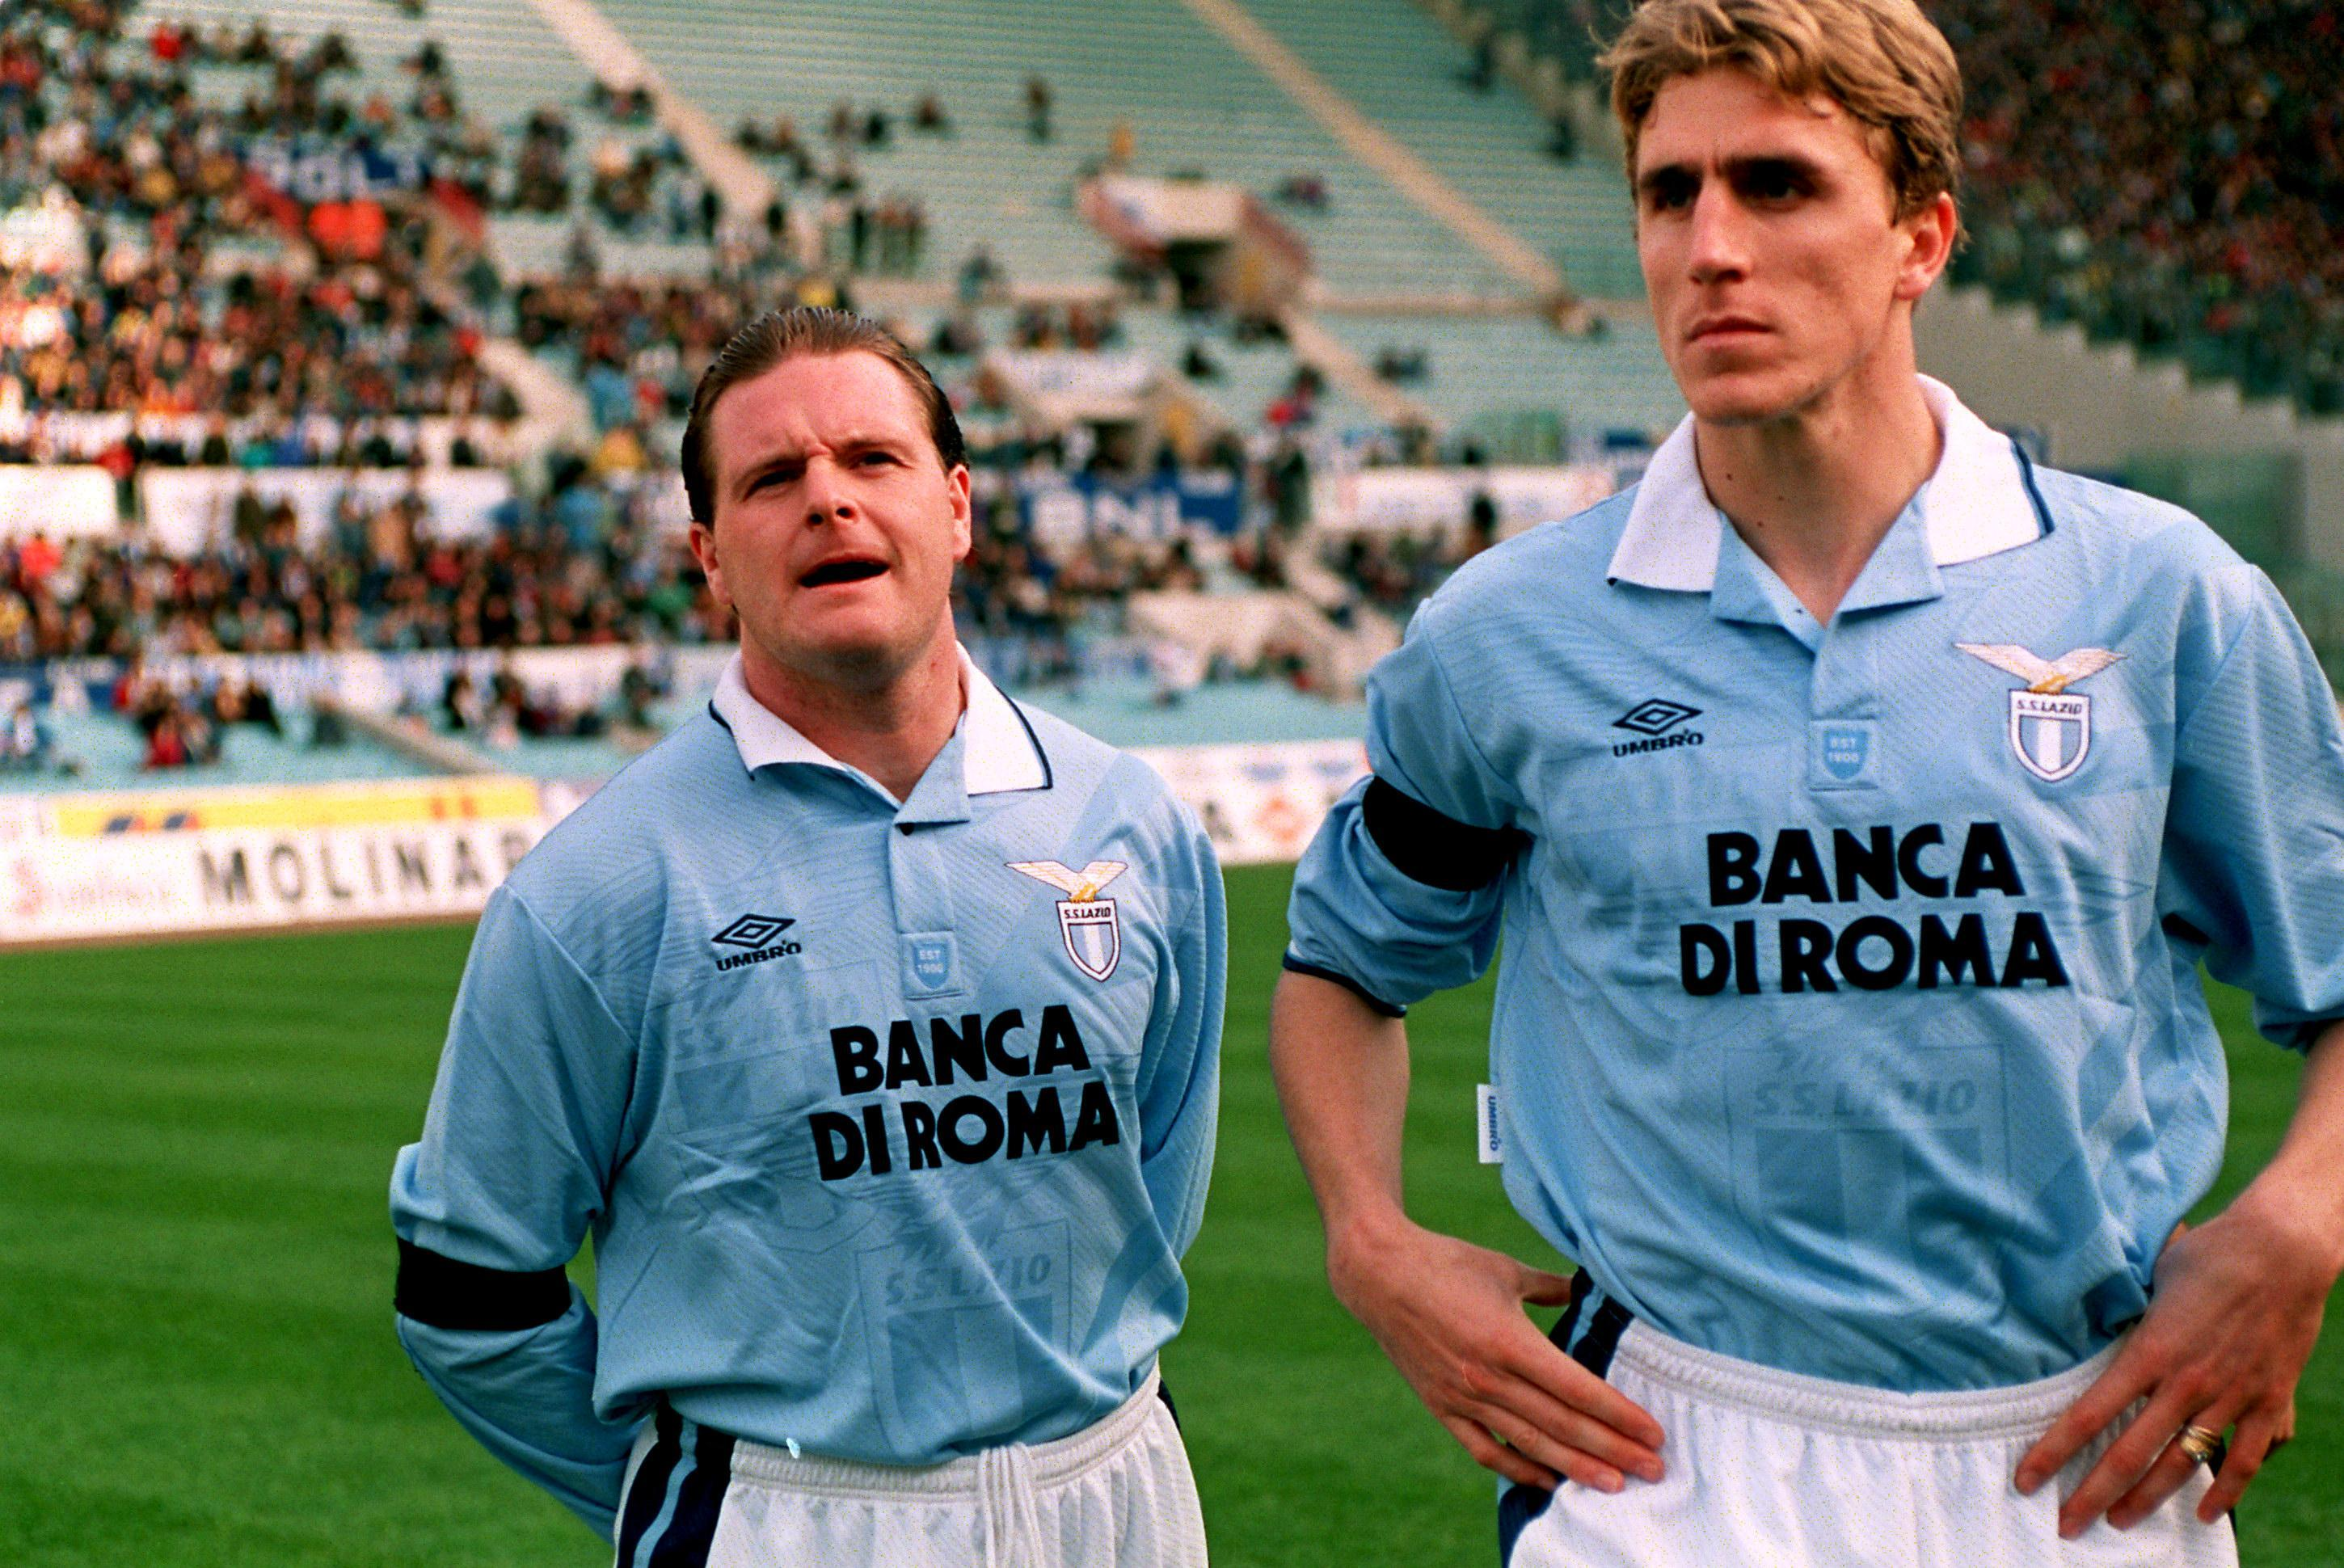 Gazza And Boksic